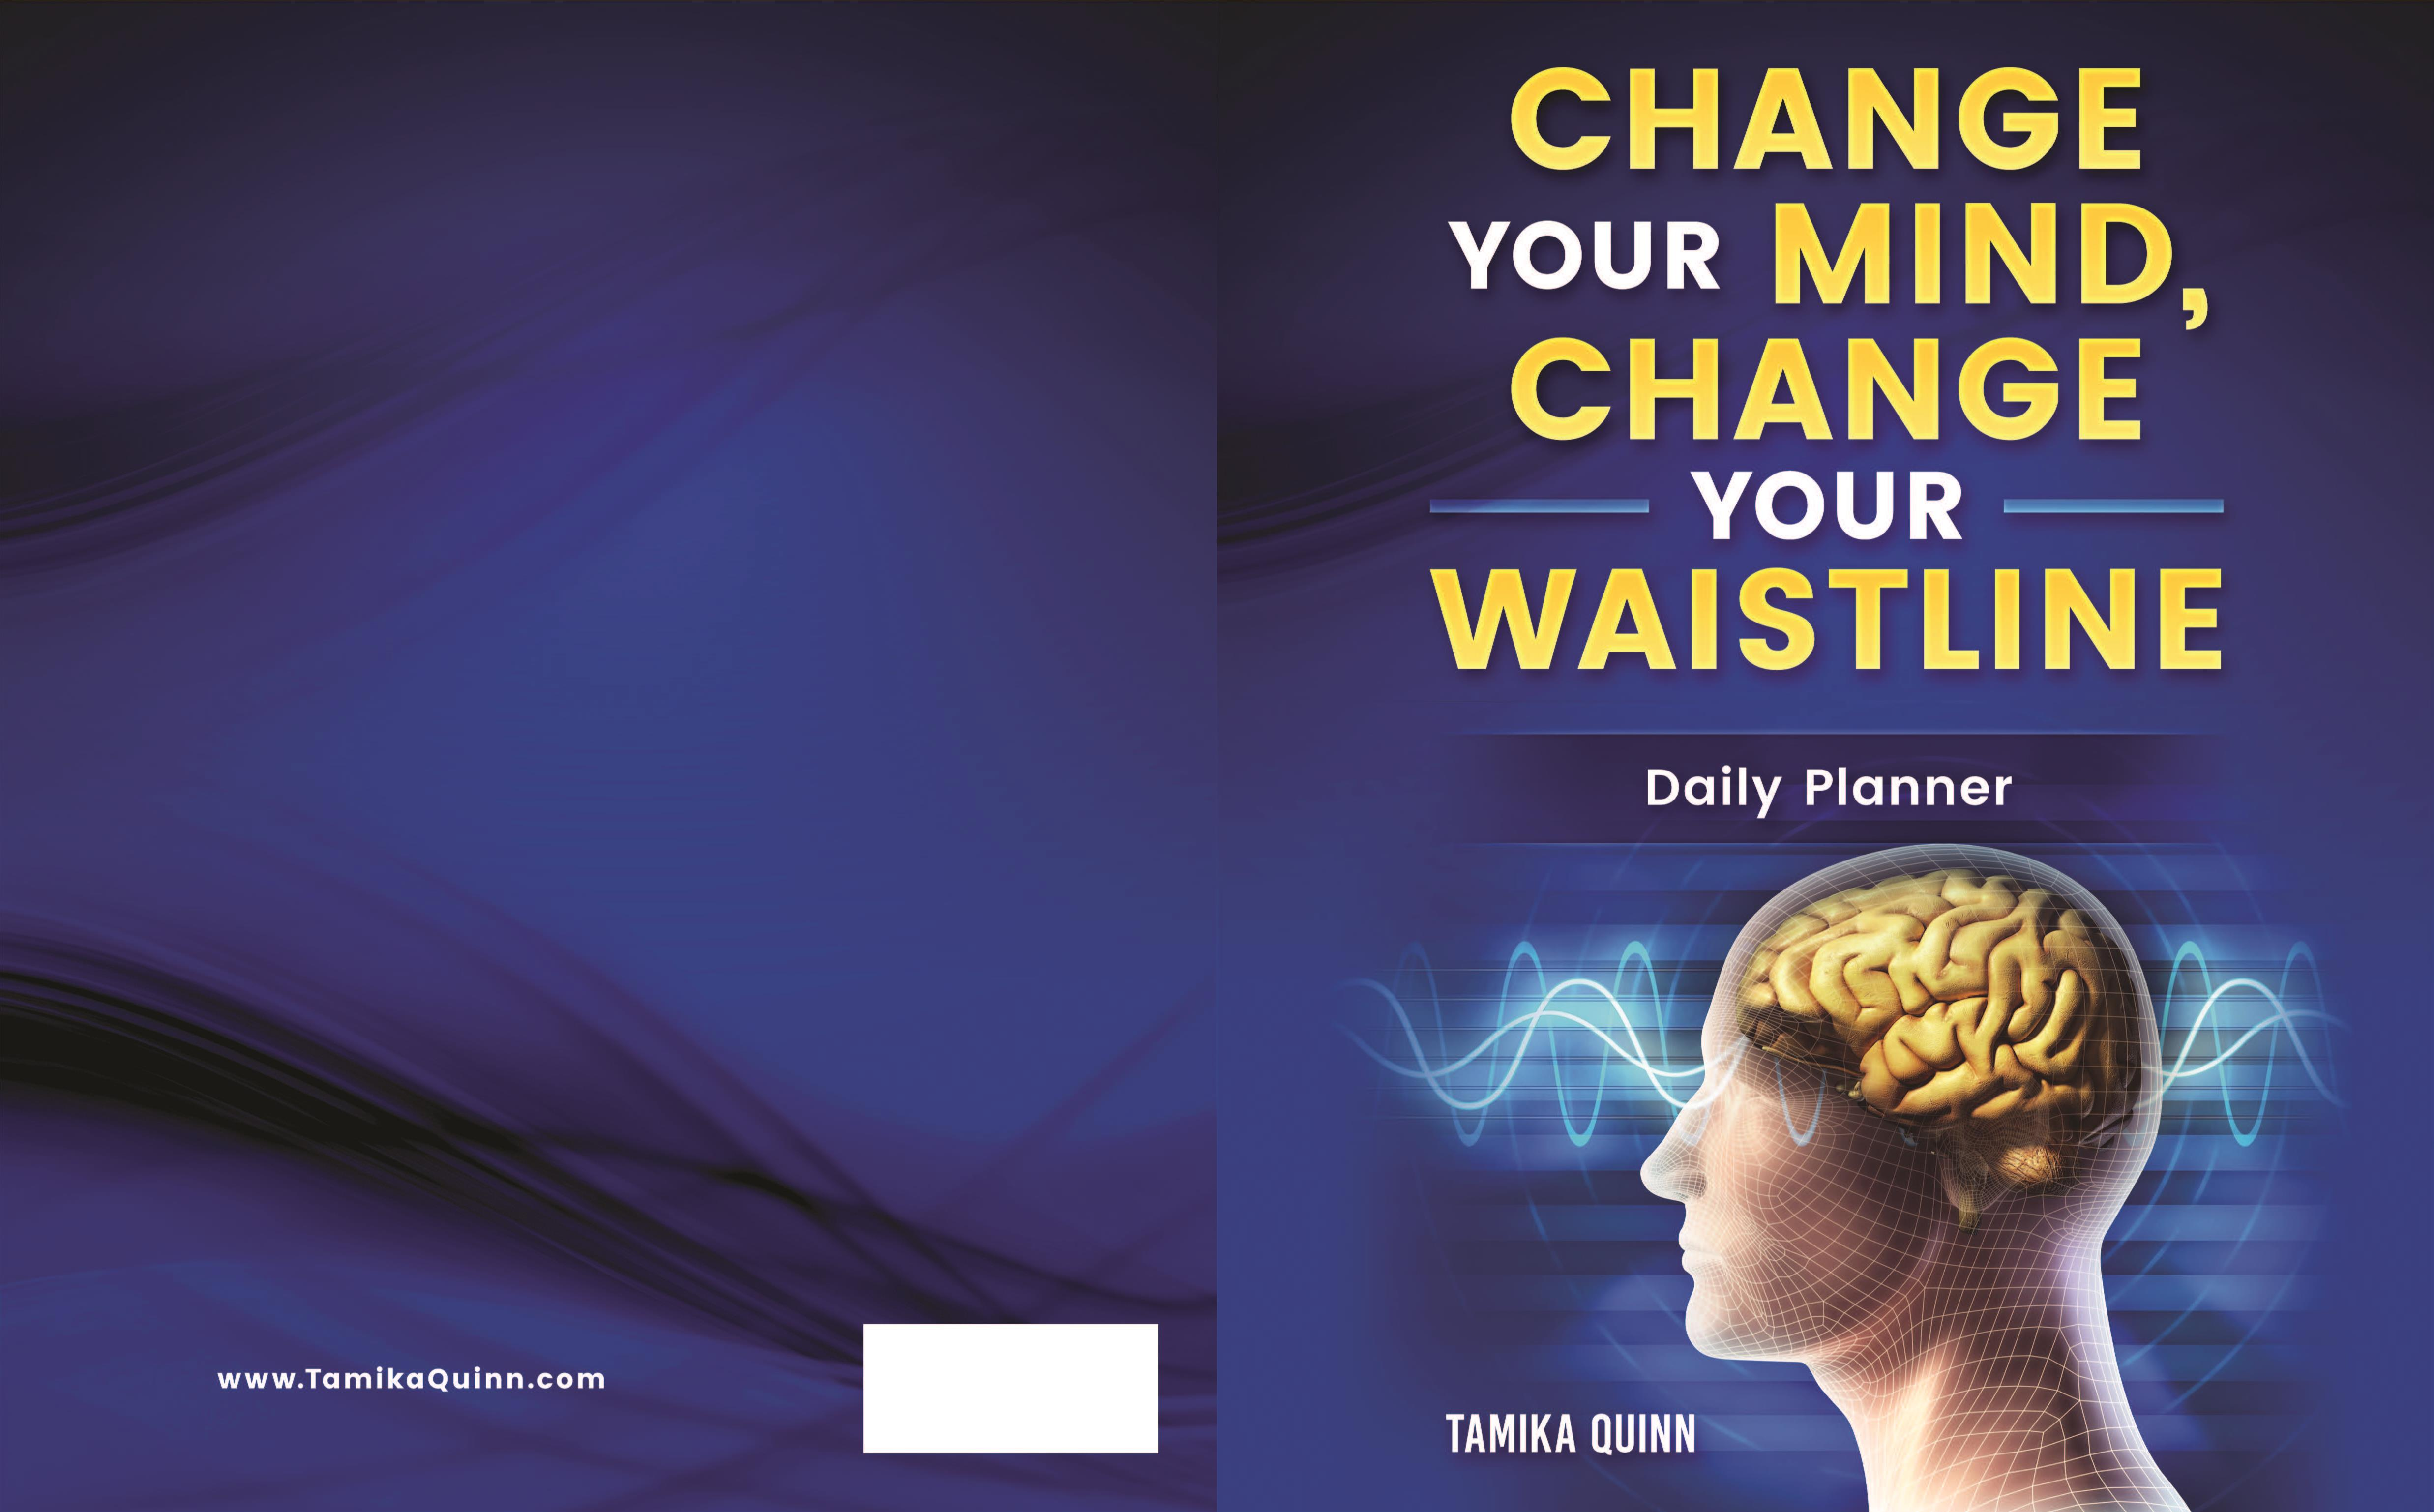 Change Your Mind Change, Your Waistline Daily Planner cover image